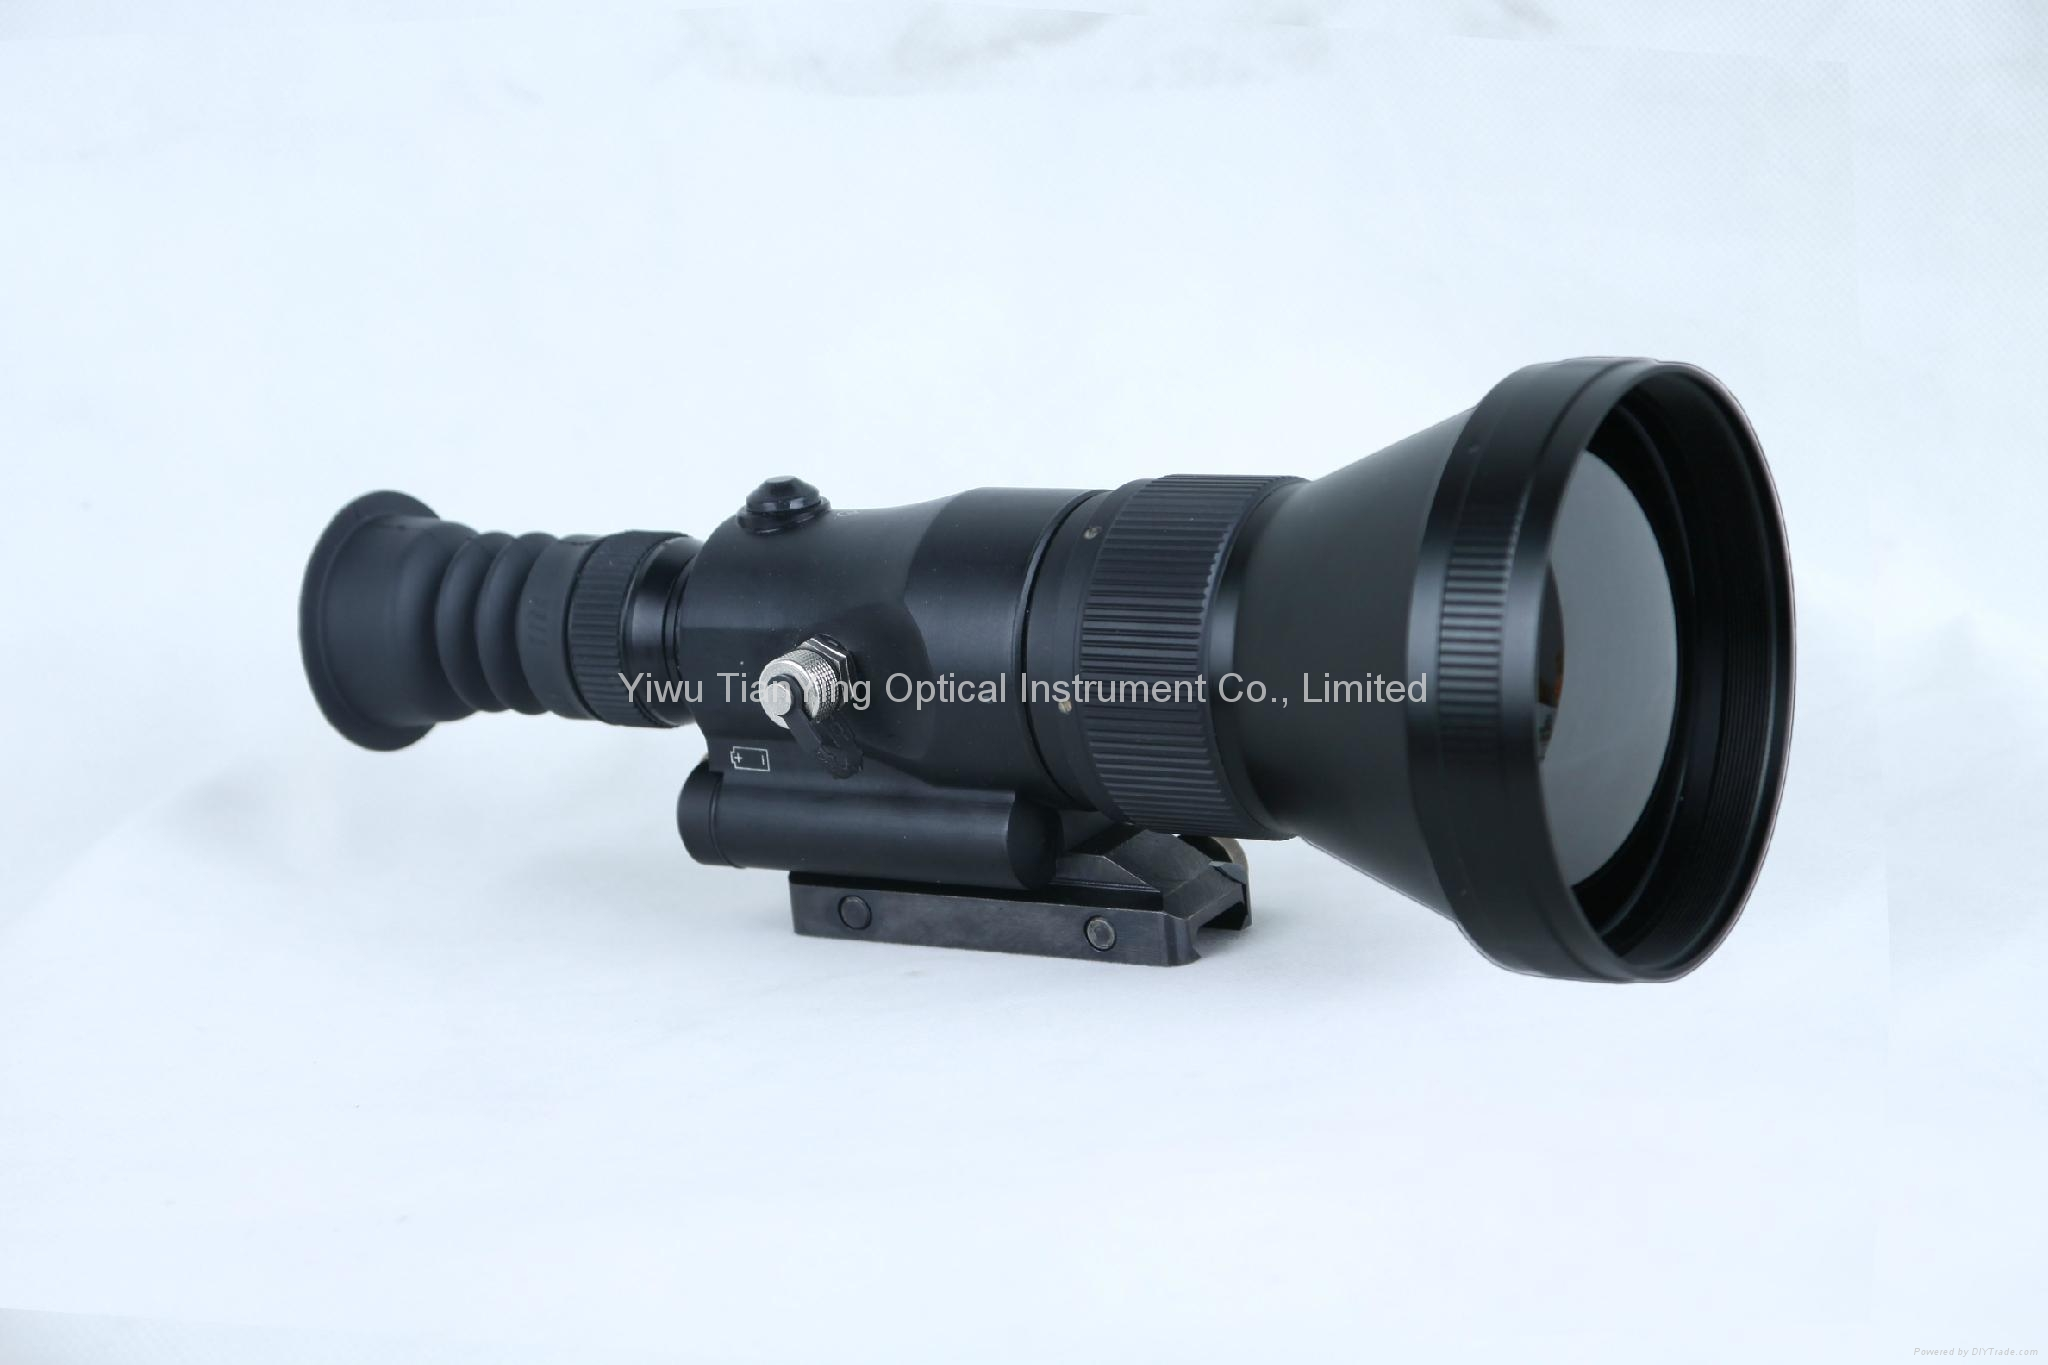 640x512 1200m Sniper Thermal Weapon Sights -2